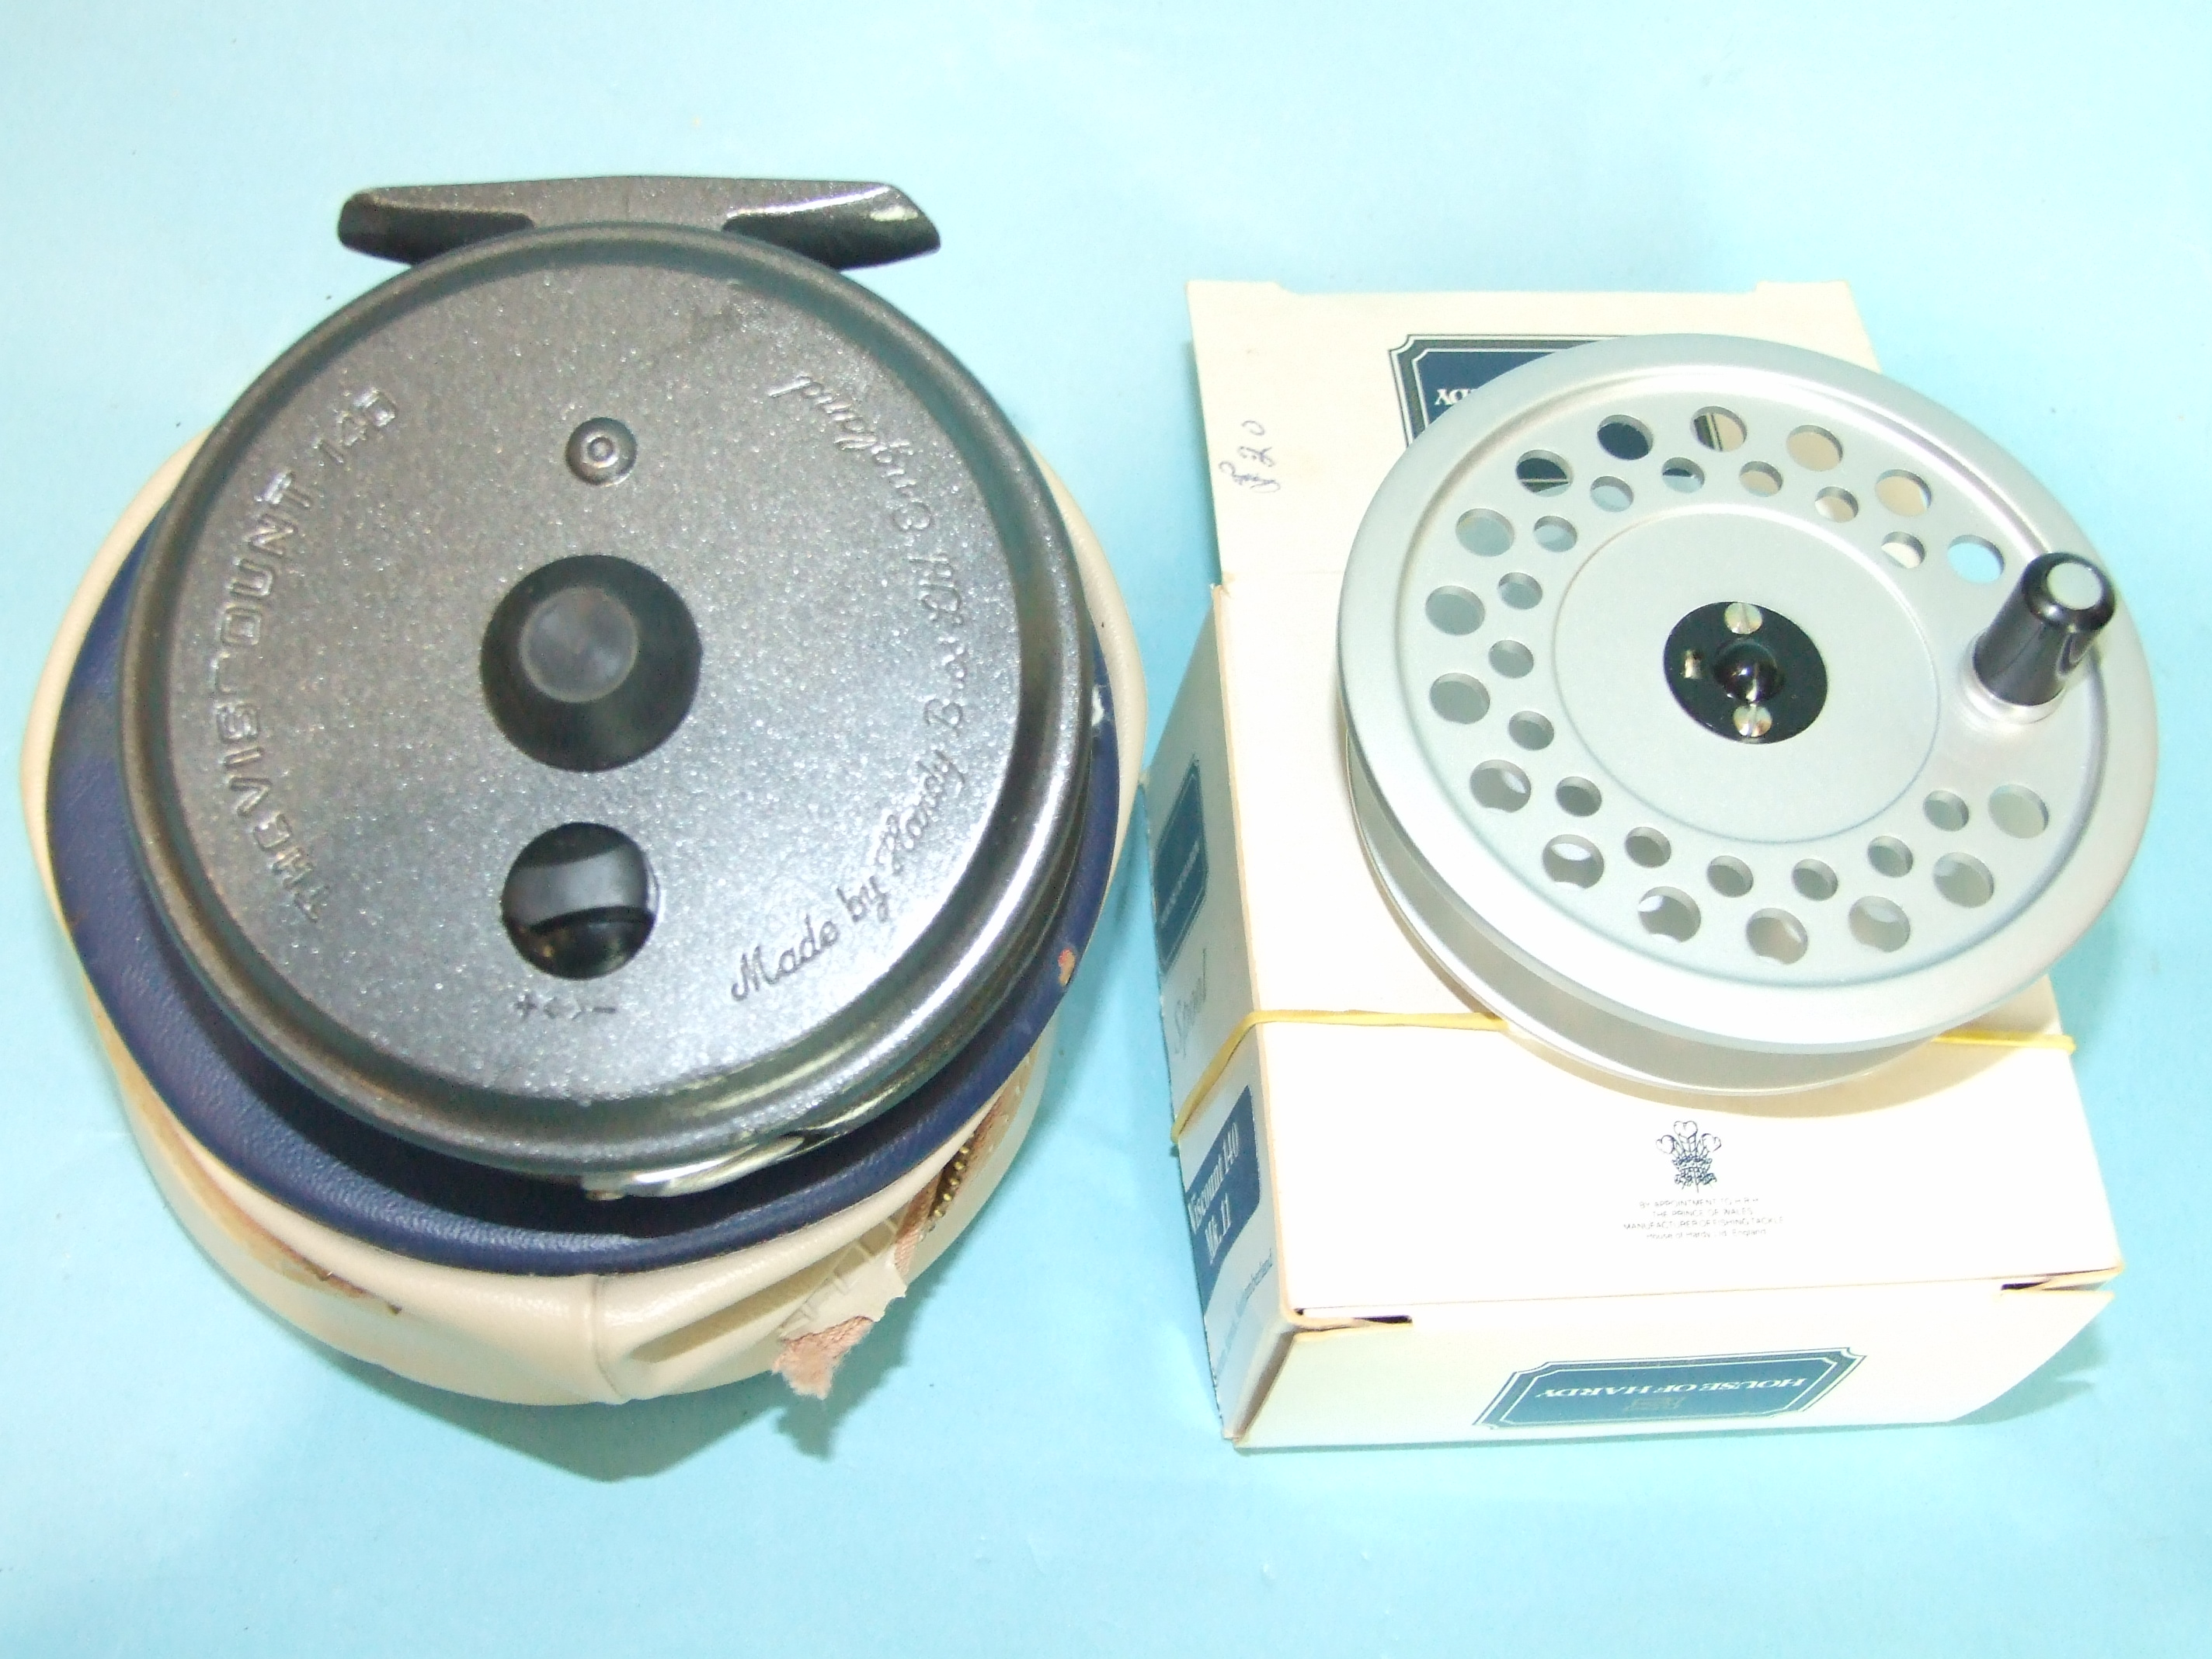 """Lot 415 - A Hardy Viscount 3½"""" fly reel and a Hardy Viscount MkII spare spool, (2)."""